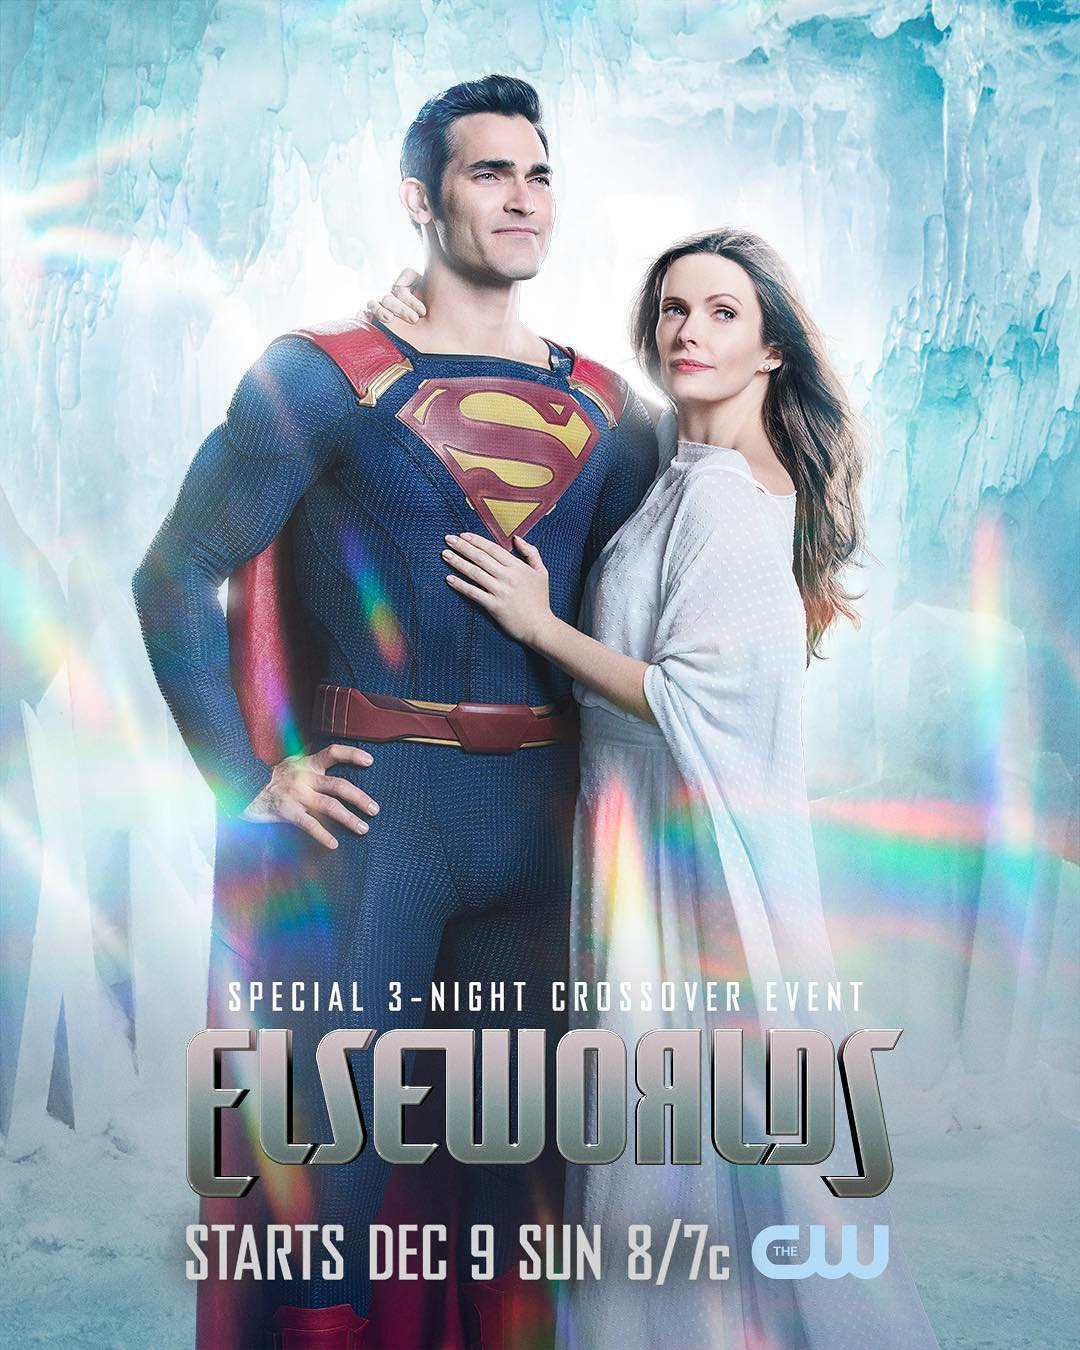 Superman Elseworlds poster